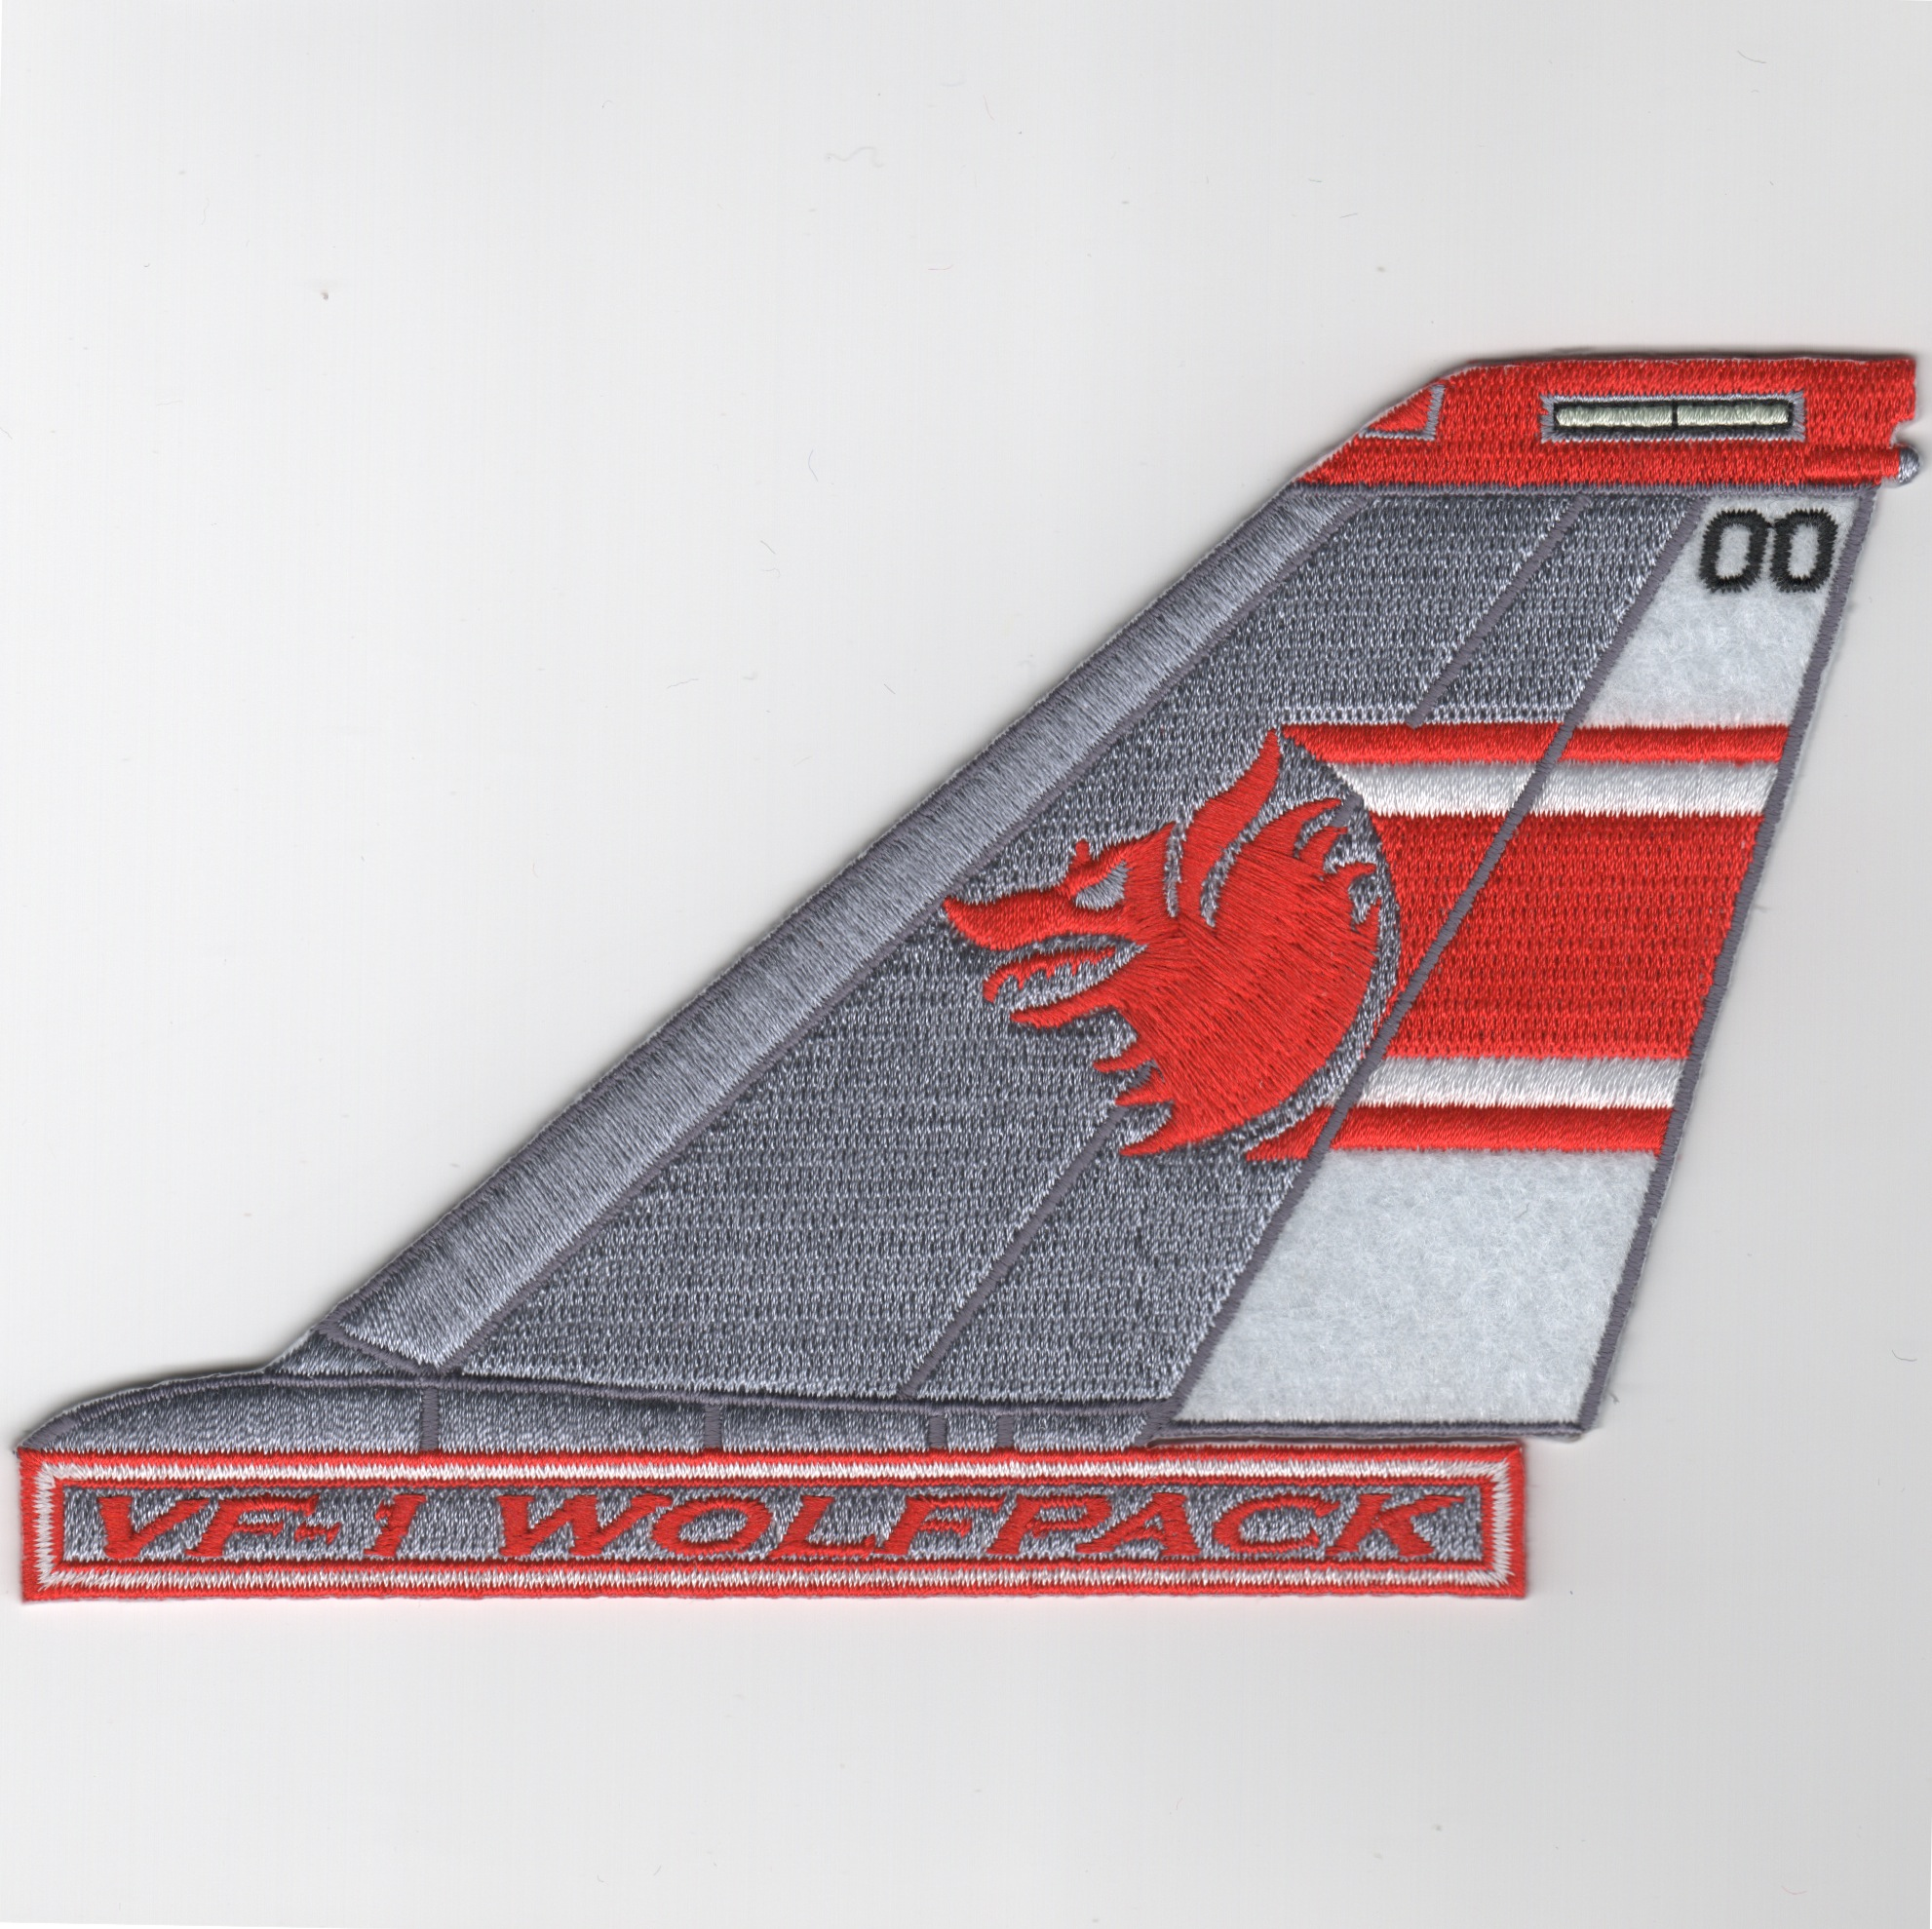 VF-1 F-14 Tomcat Tail Fin (Red/White/Text)